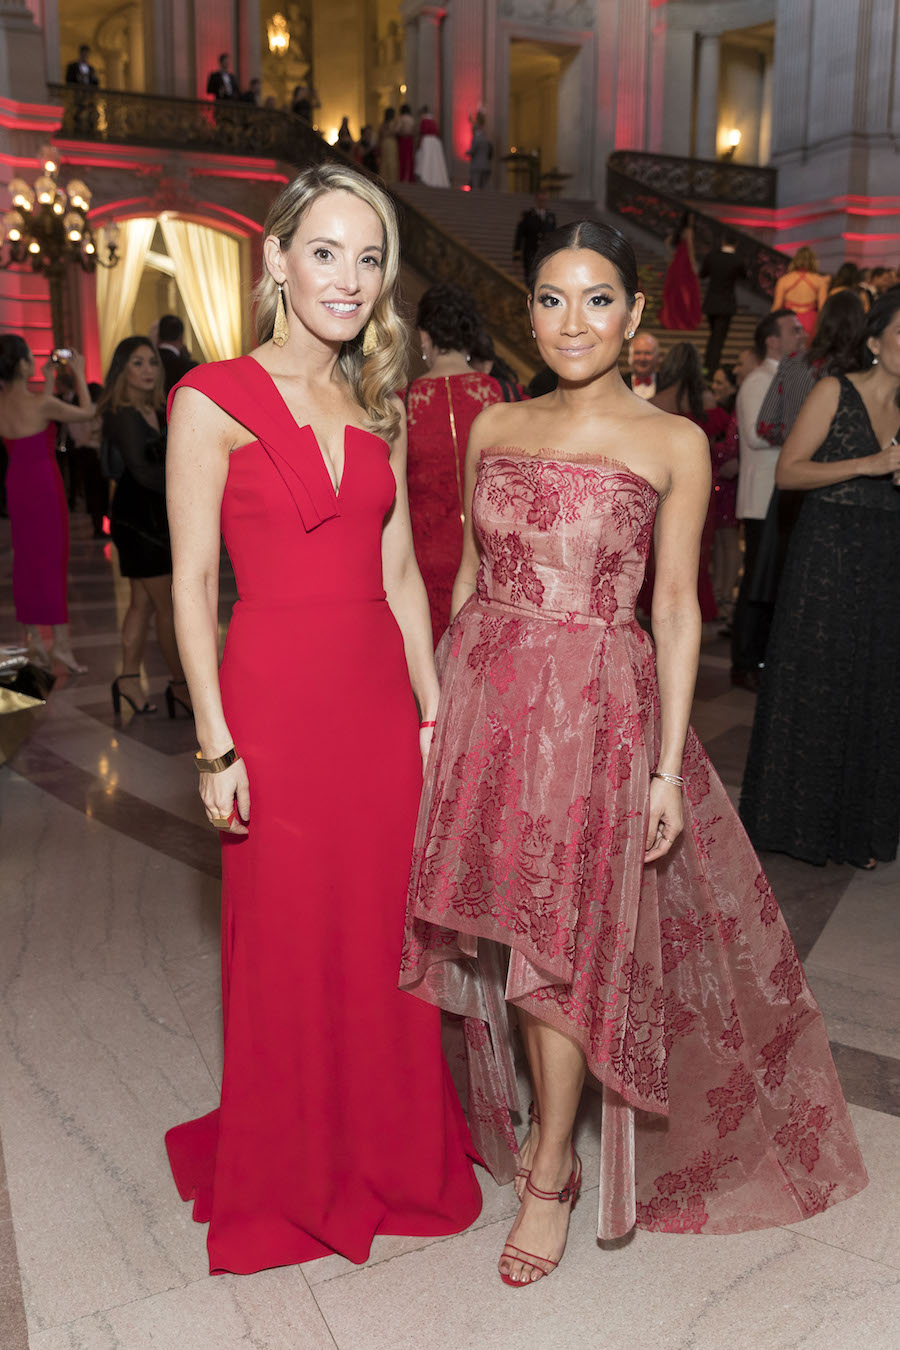 Gala co-chairs Lindsey Haswell and Lillian Phan